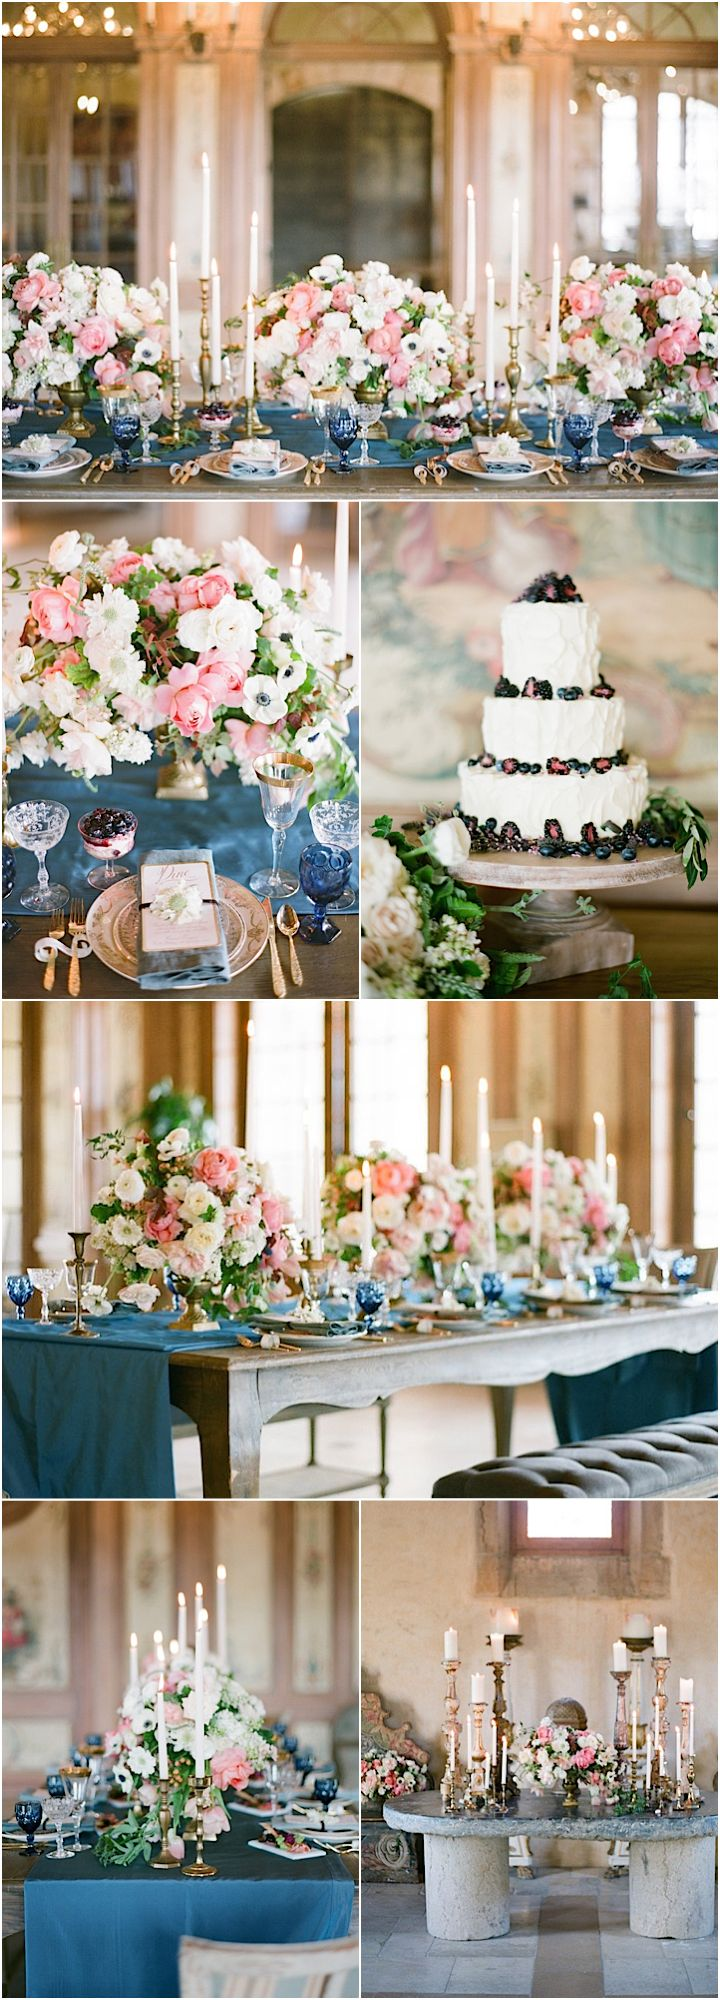 Featured Photographer: Bryan Miller; chic wedding reception details